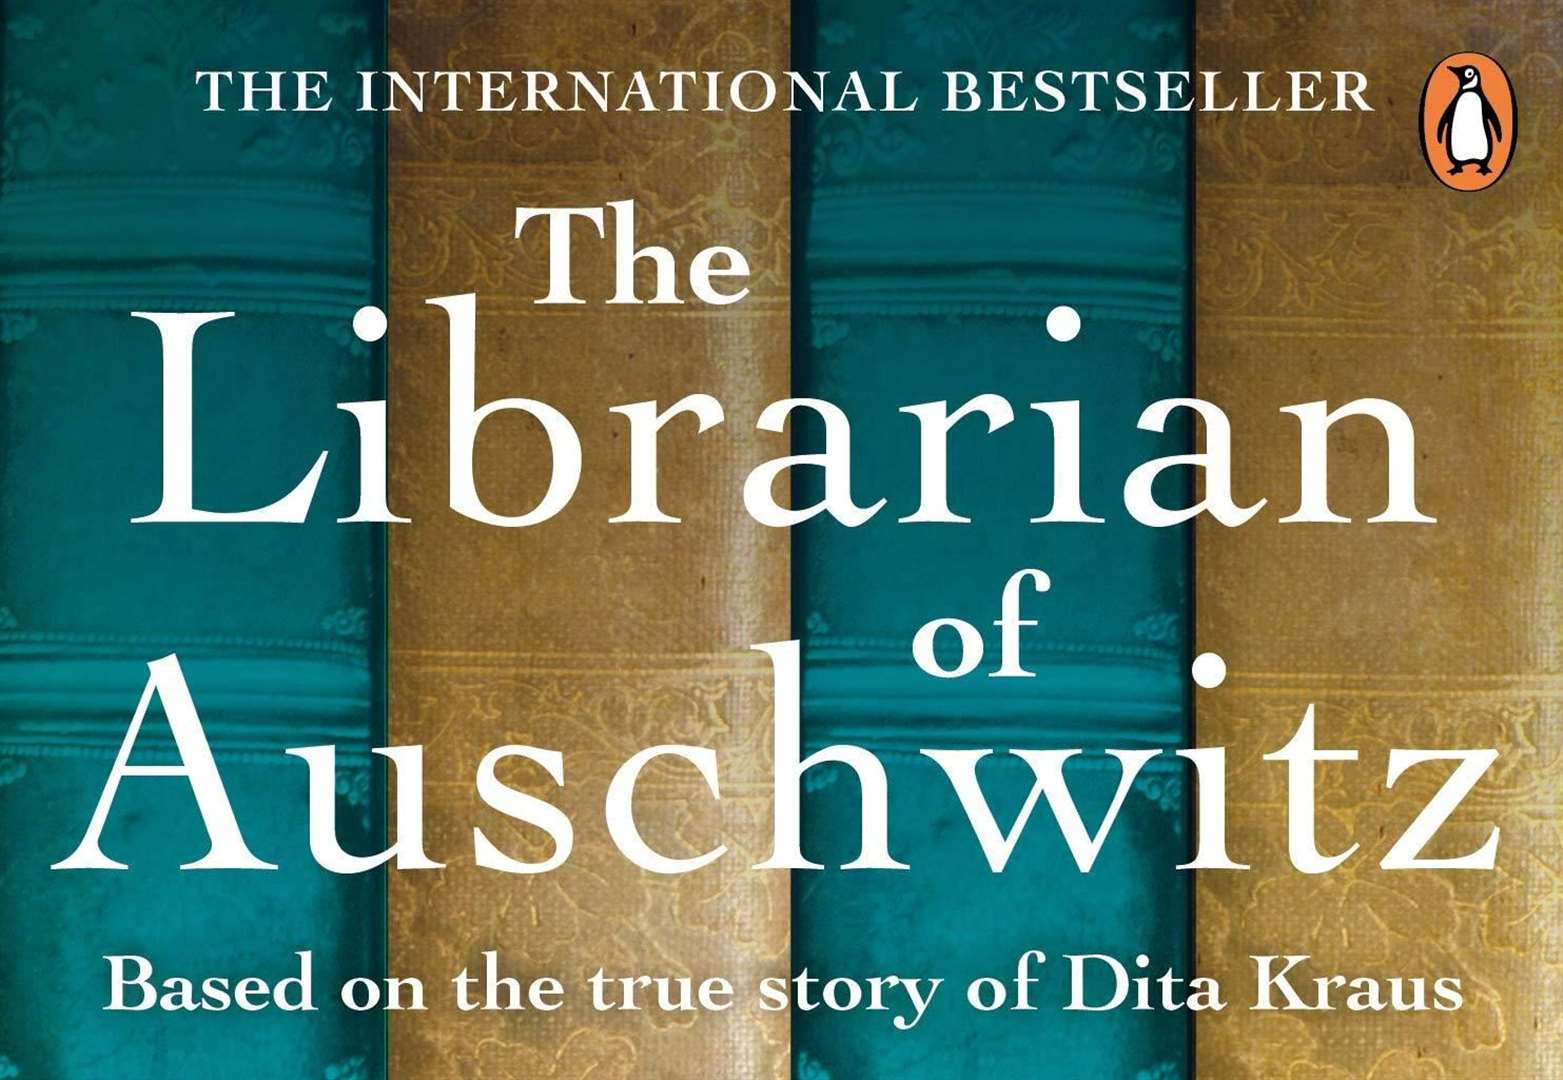 BOOK OF THE WEEK: The Librarian of Auschwitz by Antonio Iturbe